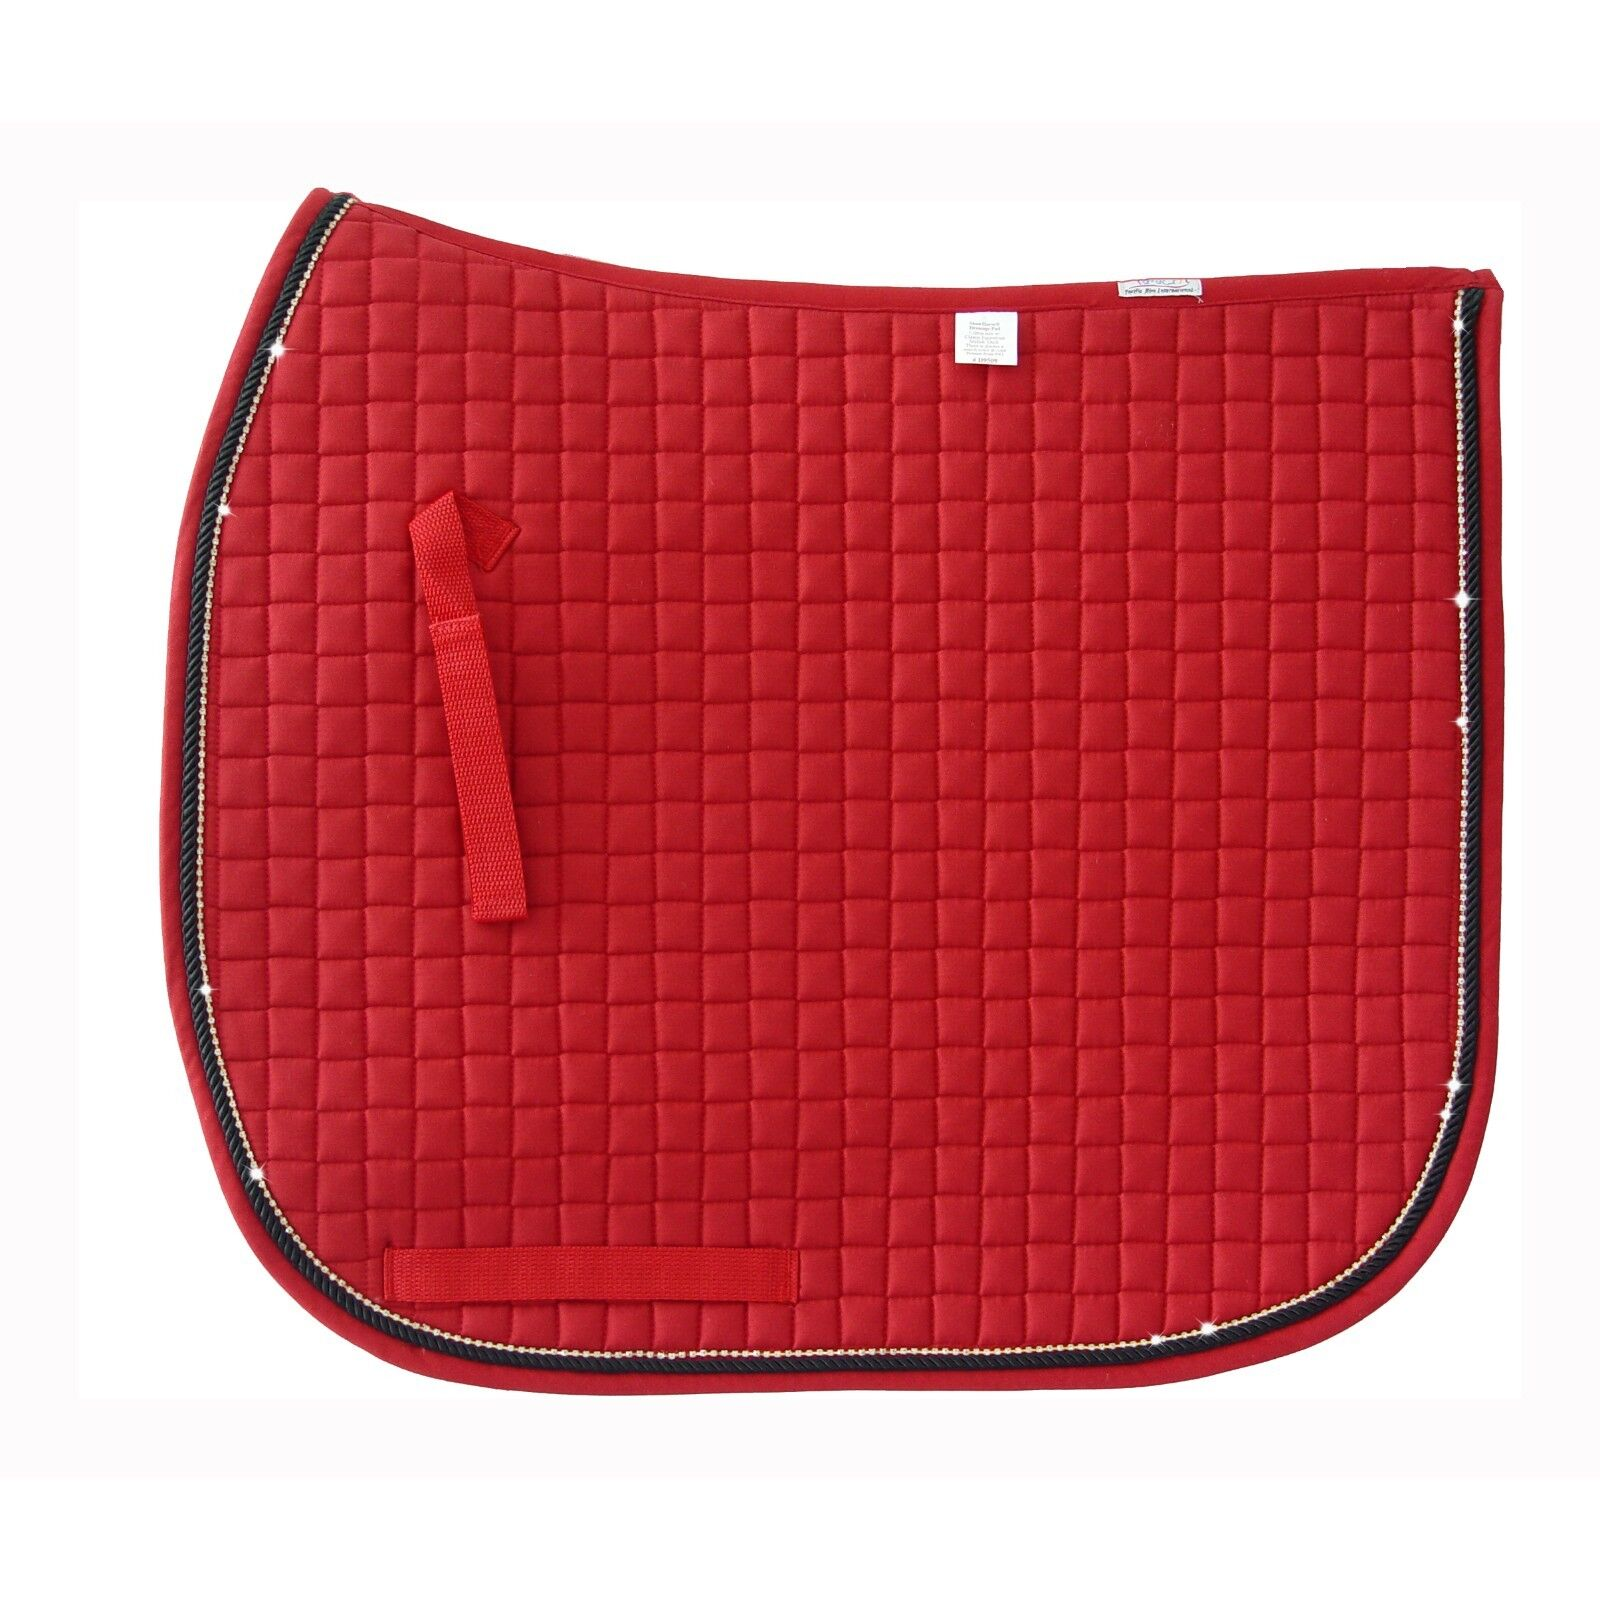 PRI Quilted Dressage Pad  with Accent Cord and Rhinestone Trim - Different colors  for sale online